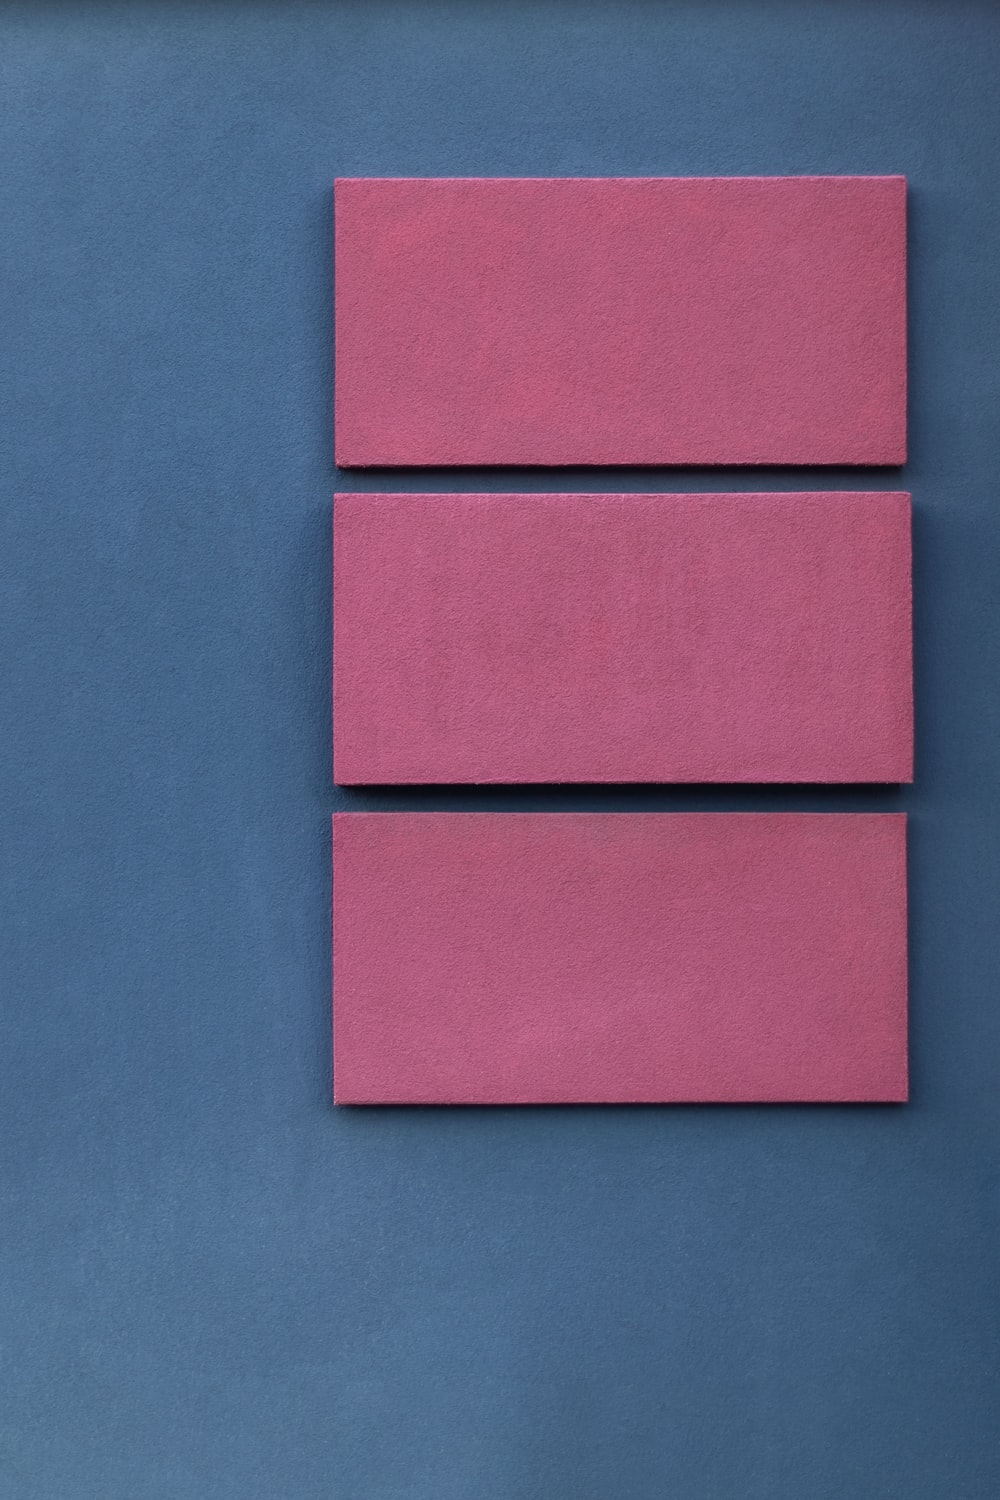 pink boards on blue surface